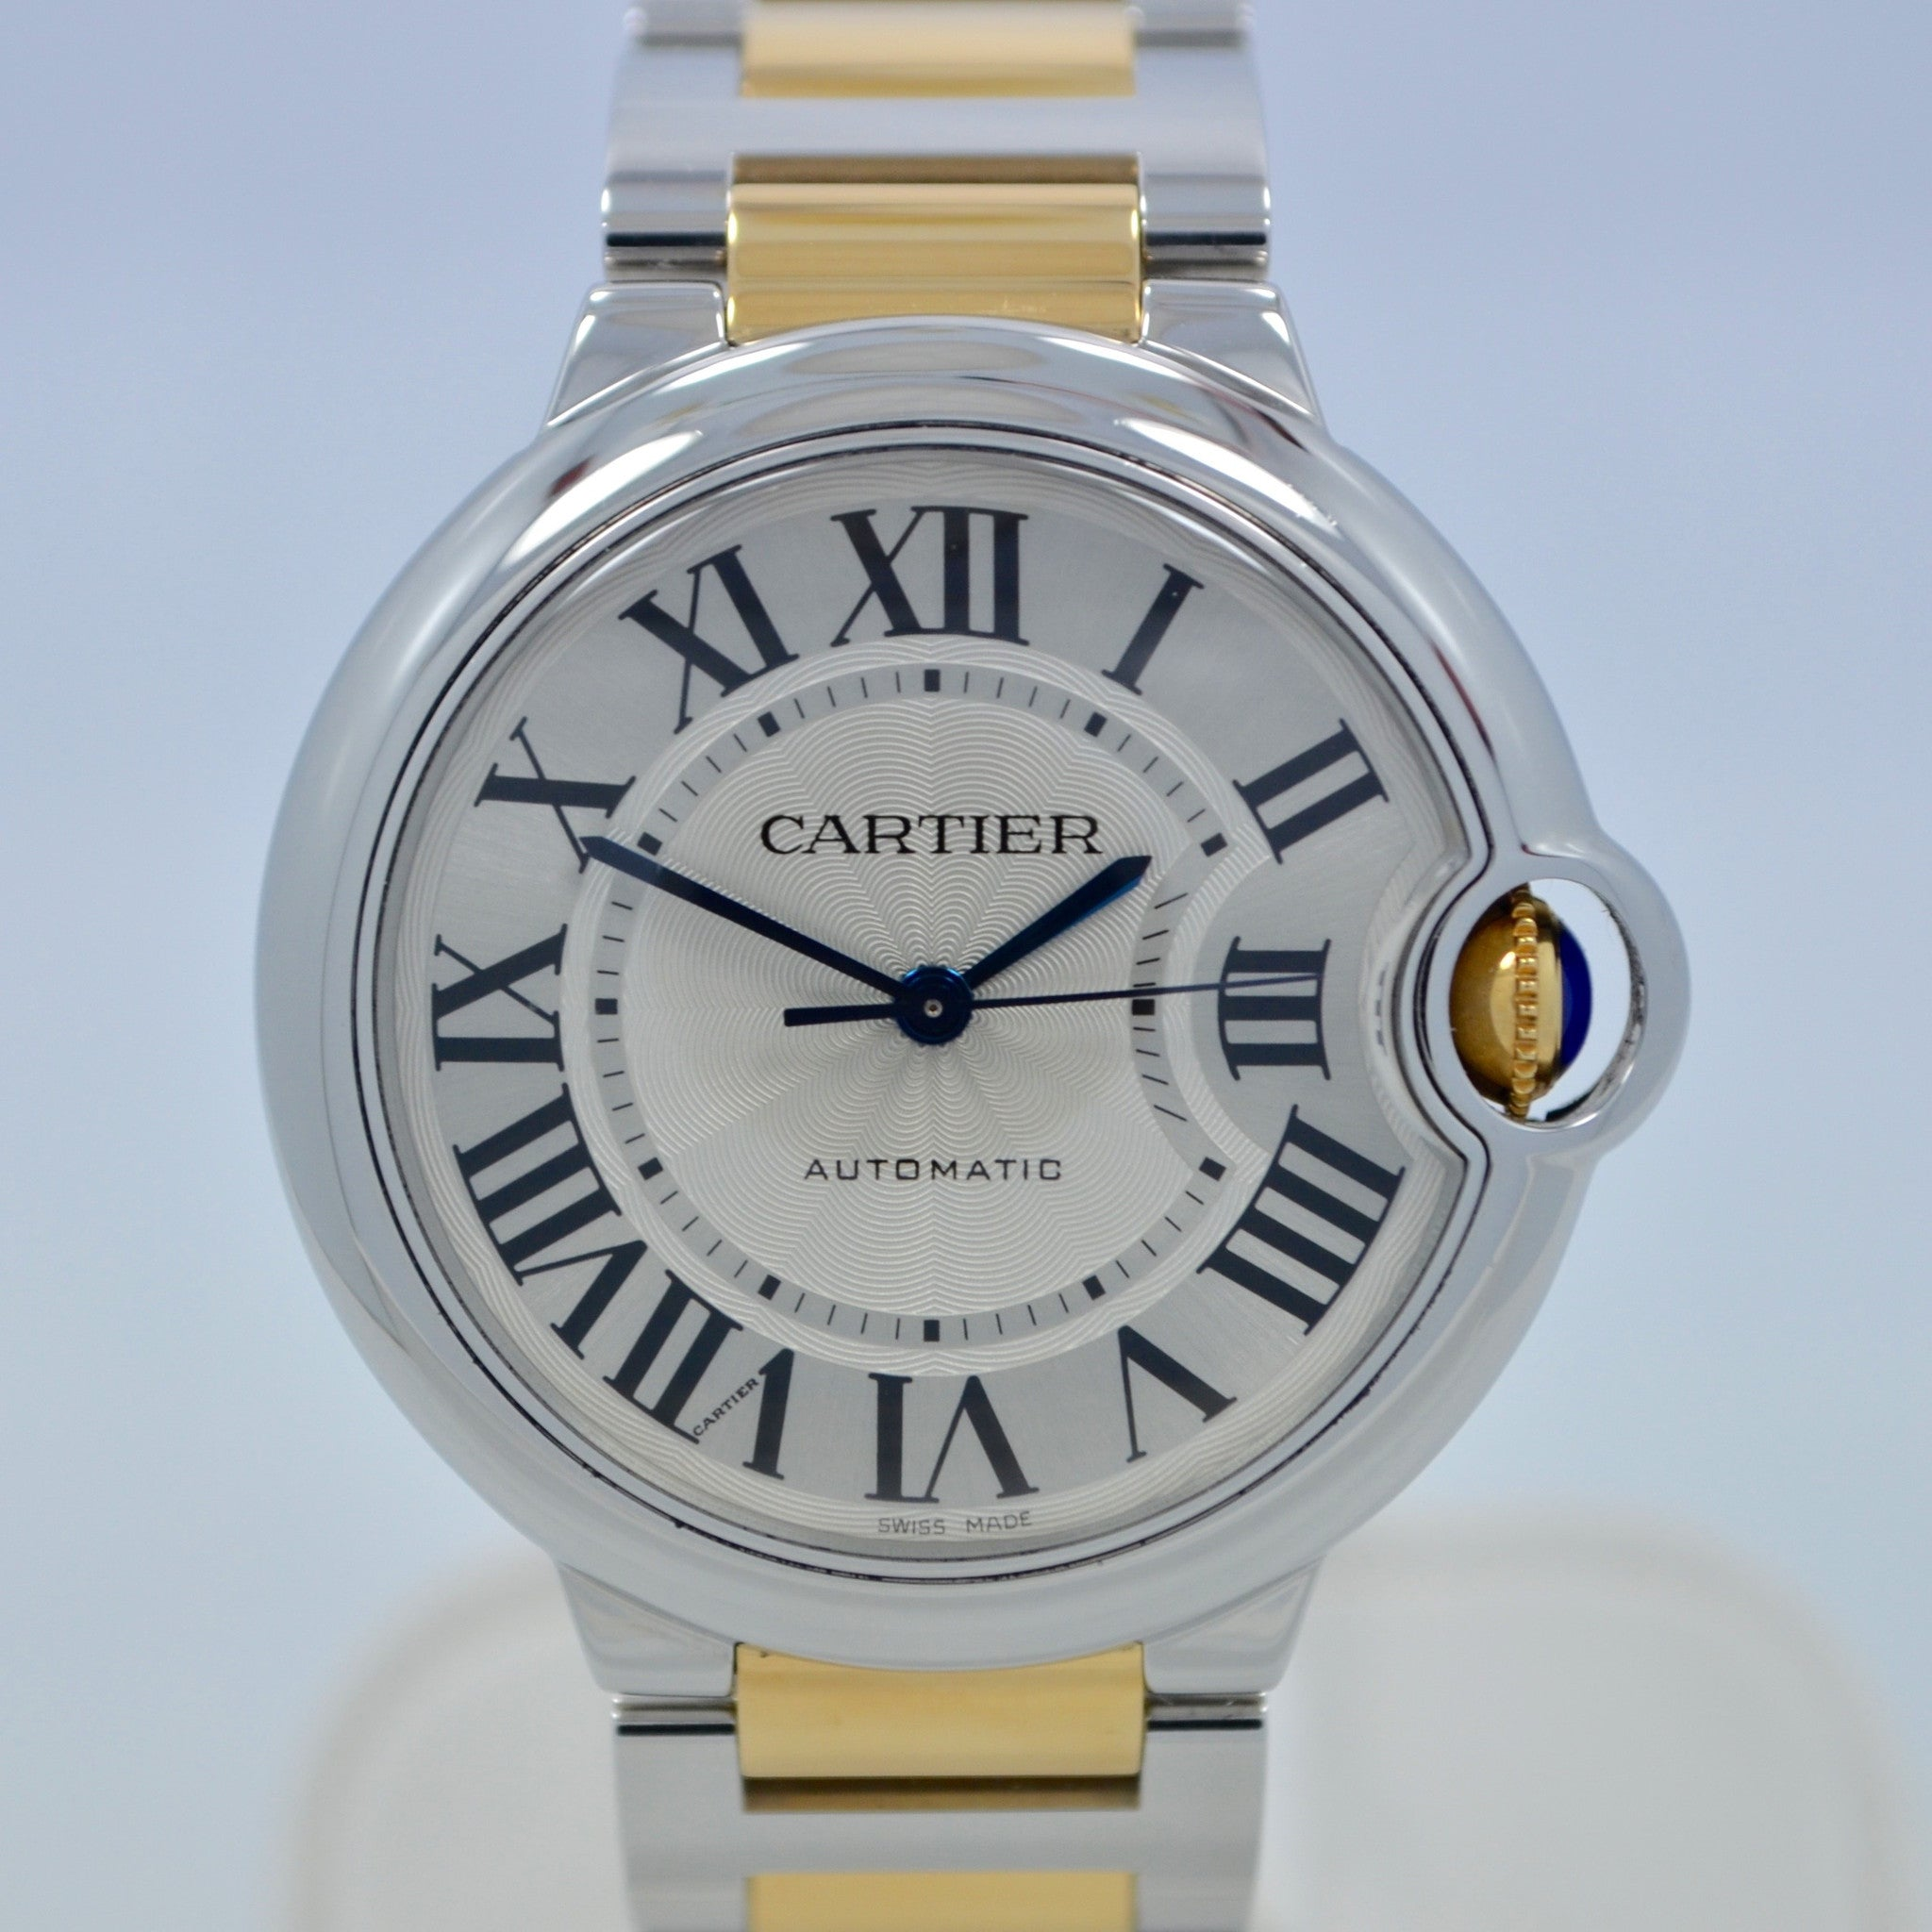 Cartier Ballon Bleu W6920047 Two Tone 18K Stainless Steel Automatic Watch Ladies - Hashtag Watch Company